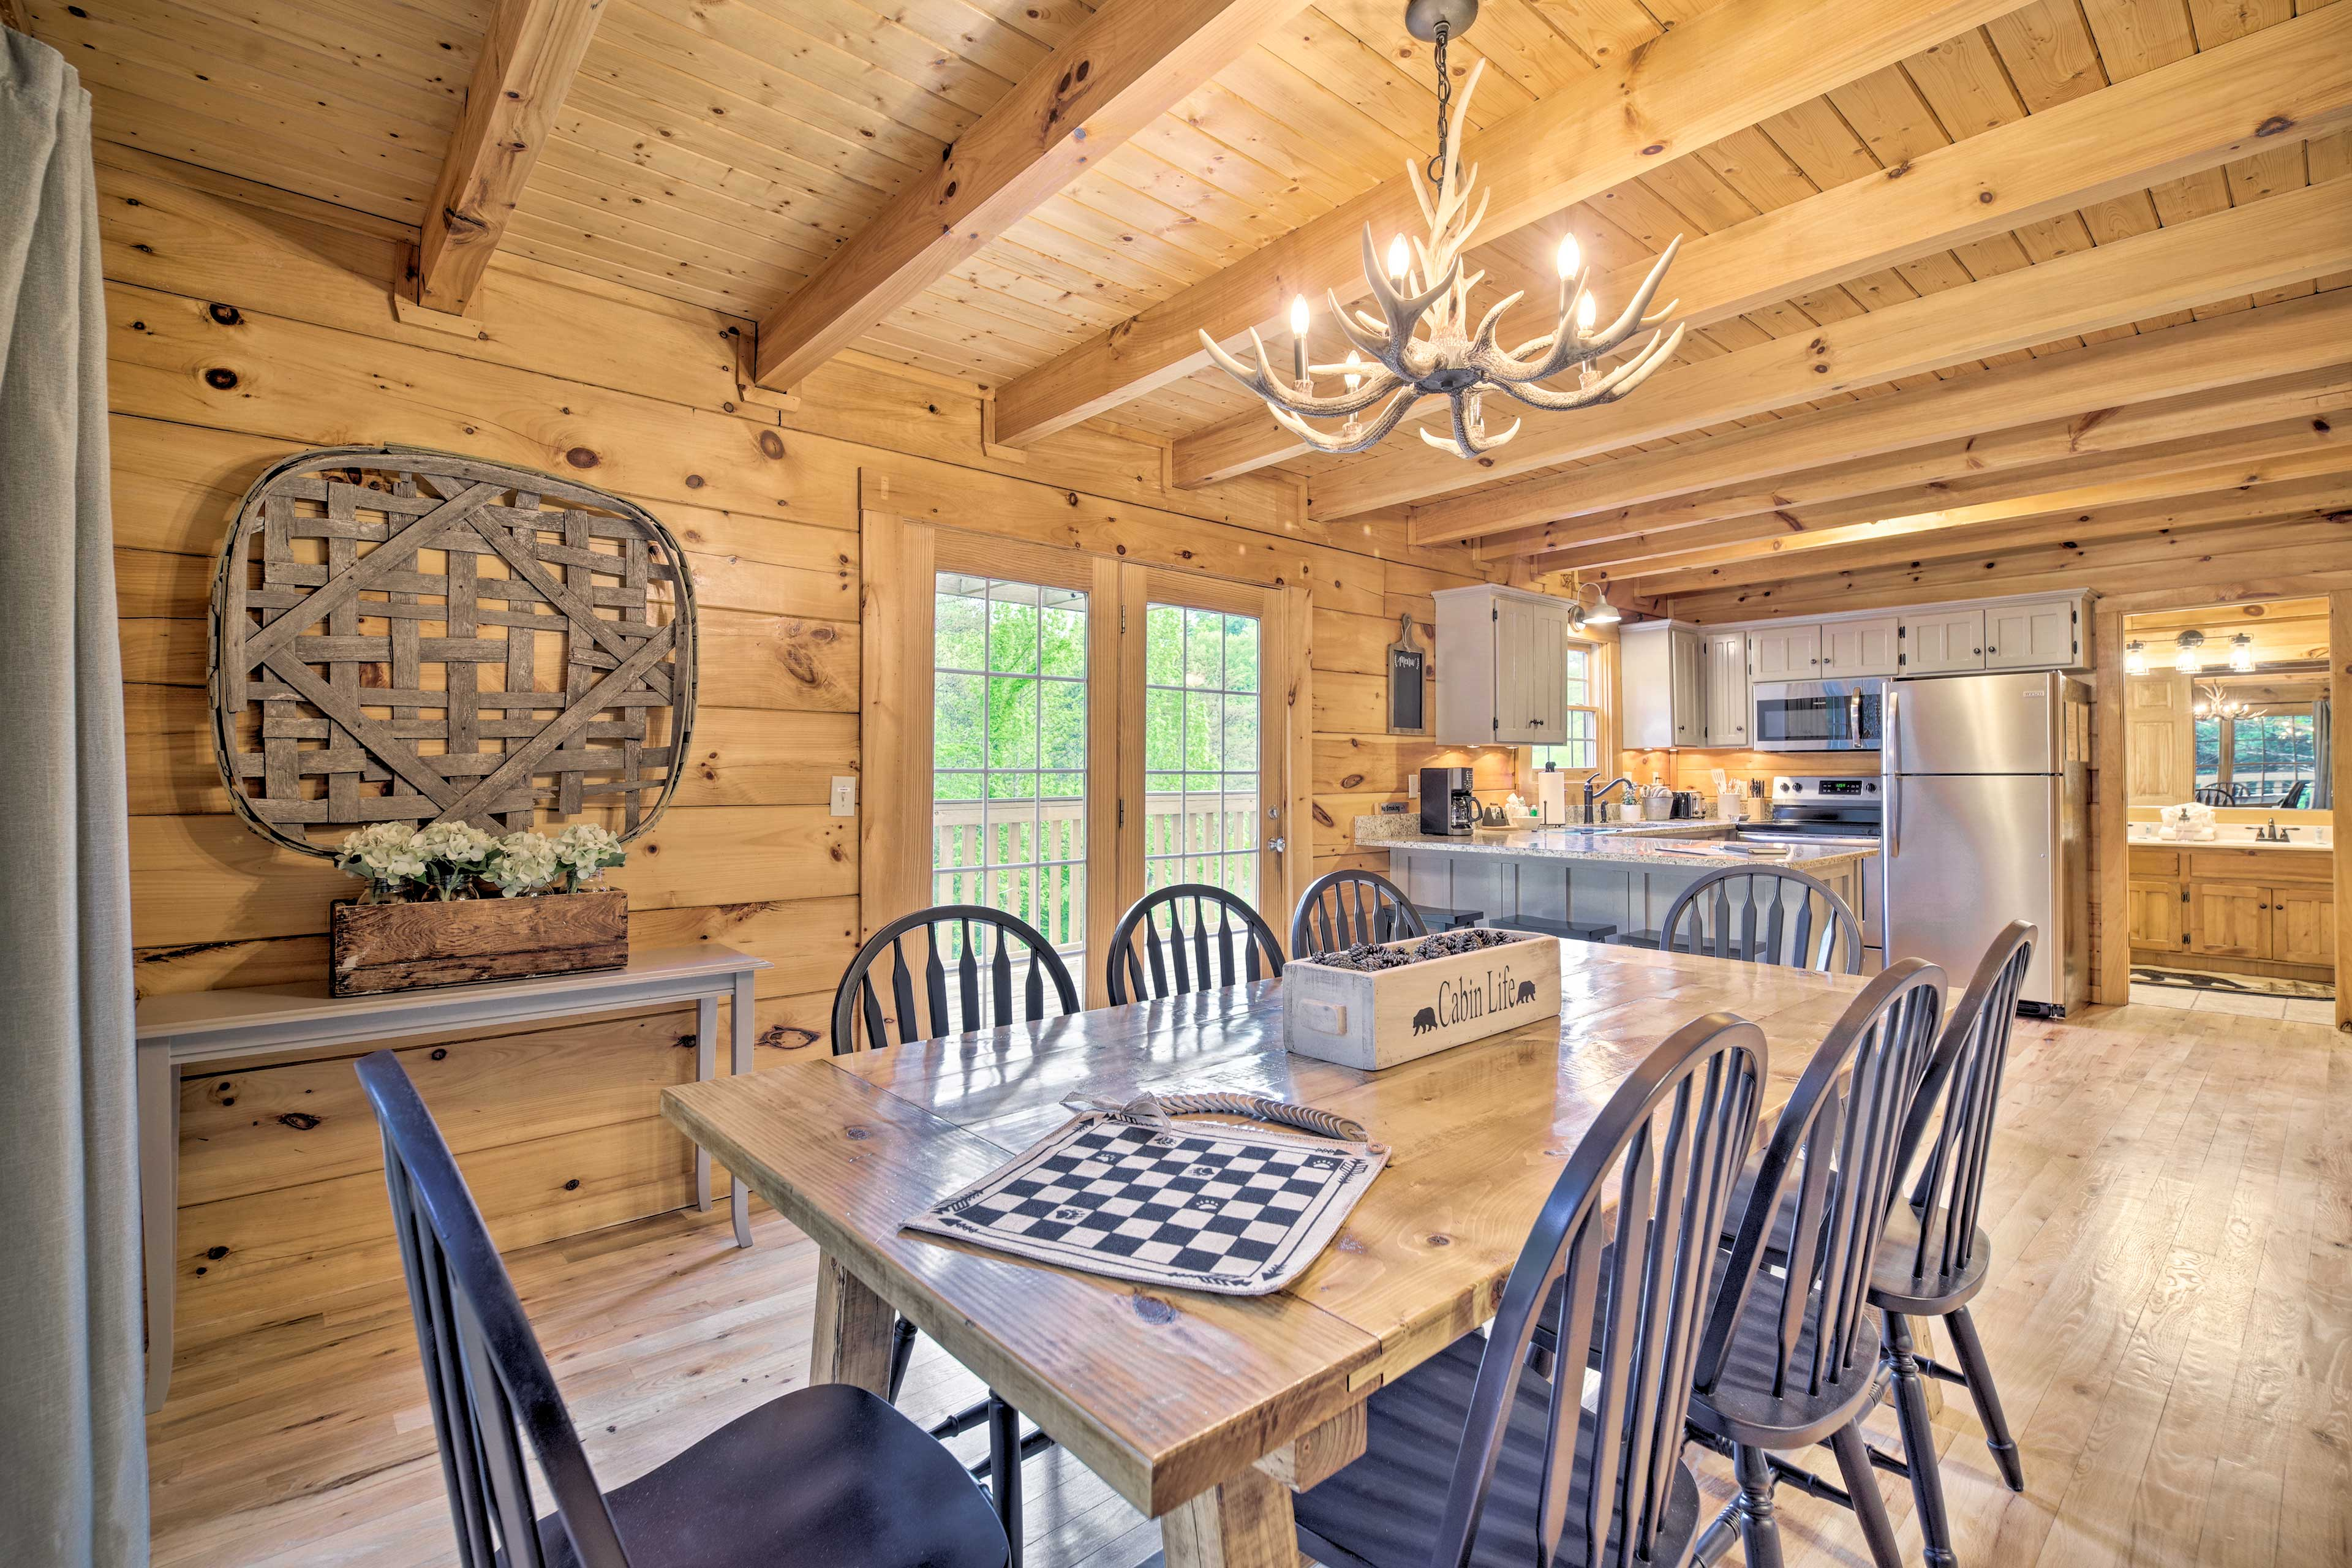 Enjoy meals together at the 8-person table!